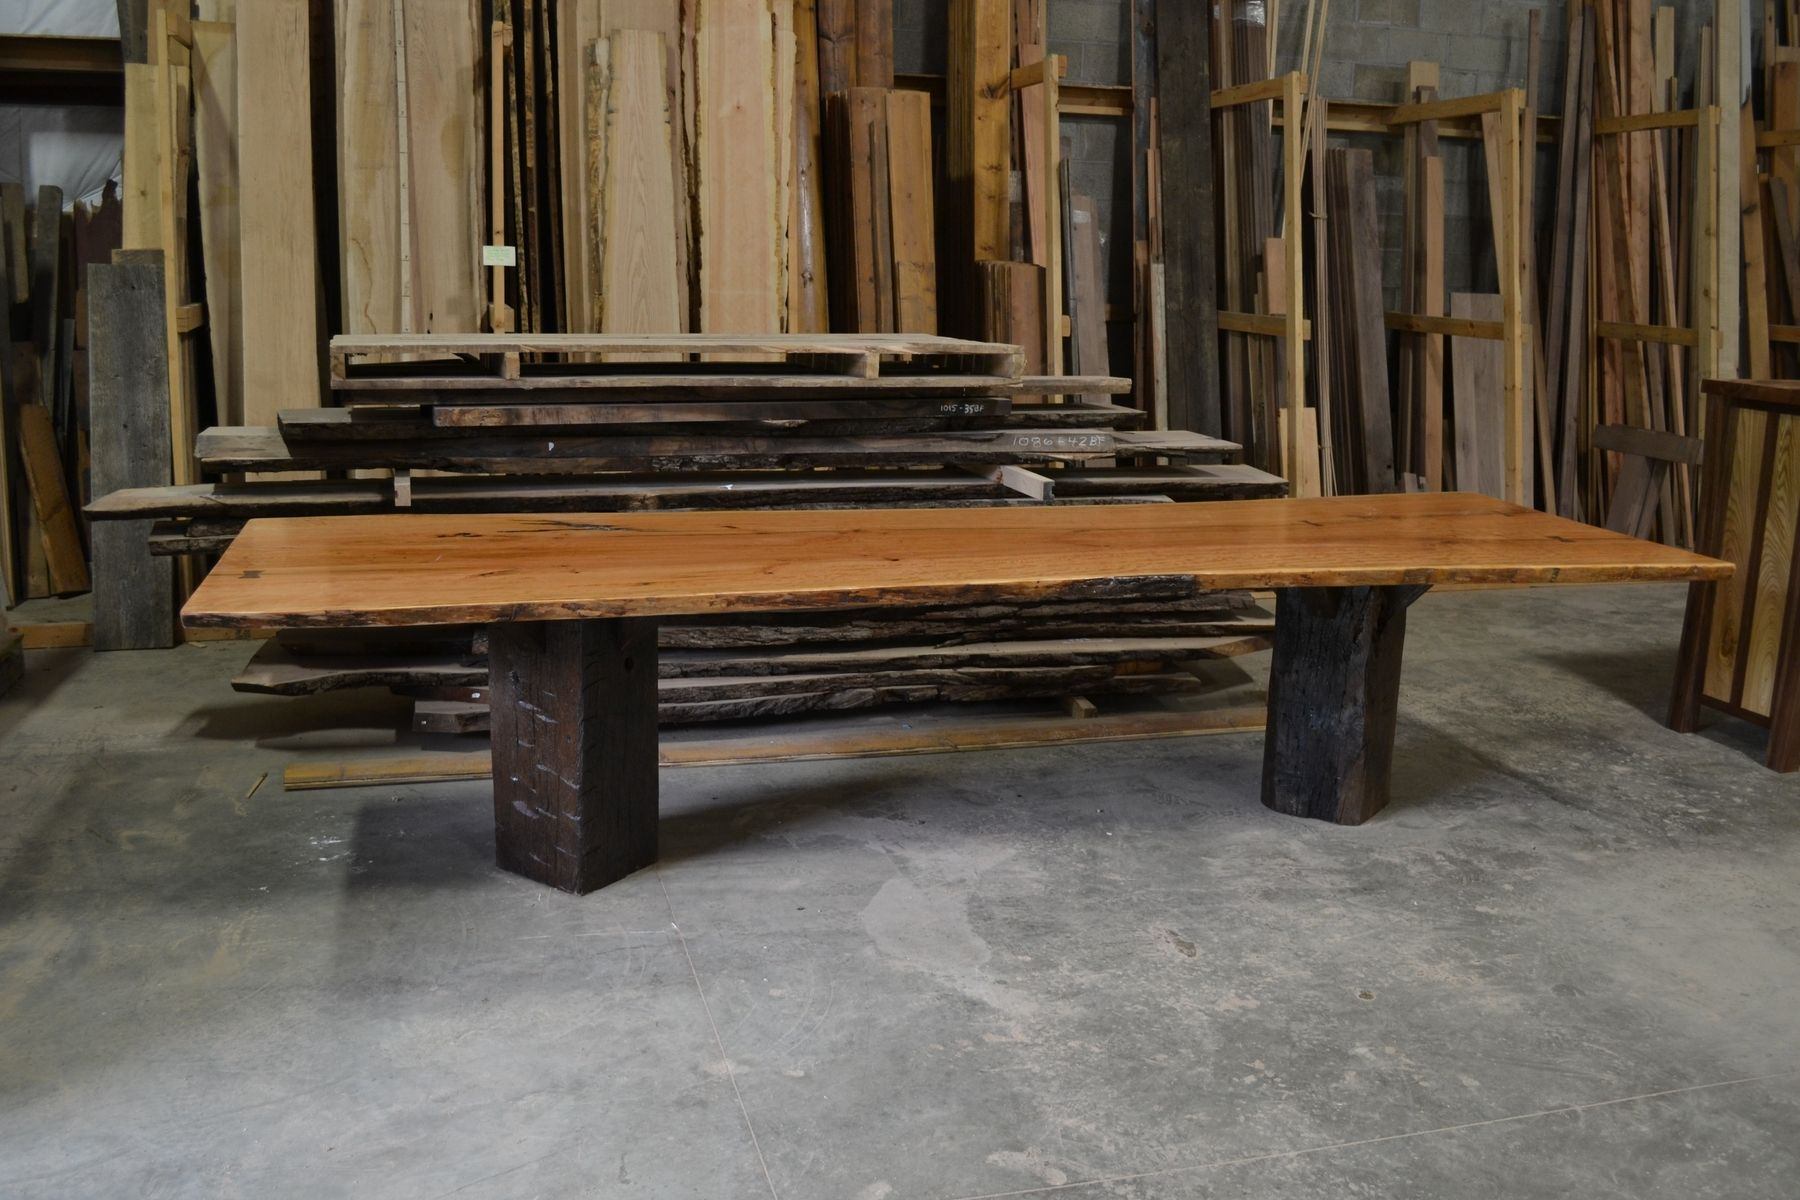 Hand Made Live Edge Cherry Slab Dining Conference Table  : 65853534967 from www.custommade.com size 1800 x 1200 jpeg 271kB